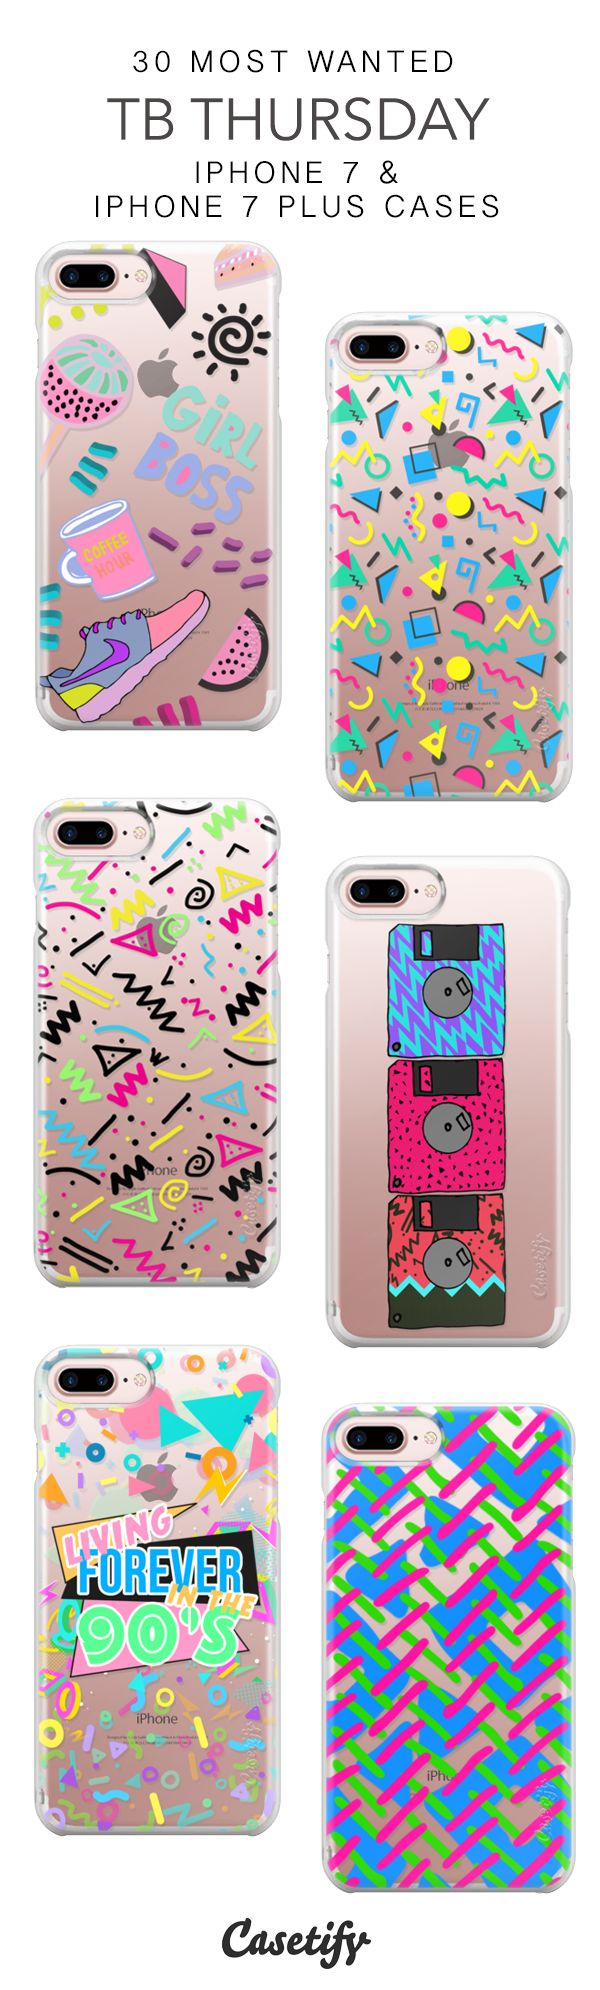 30 Most Wanted TB Thursday Protective iPhone 7 Cases and iPhone 7 Plus Cases. More 90s Vibes iPhone case here > https://www.casetify.com/collections/top_100_designs#/?vc=o1sjDUvoa6 #iphonead,